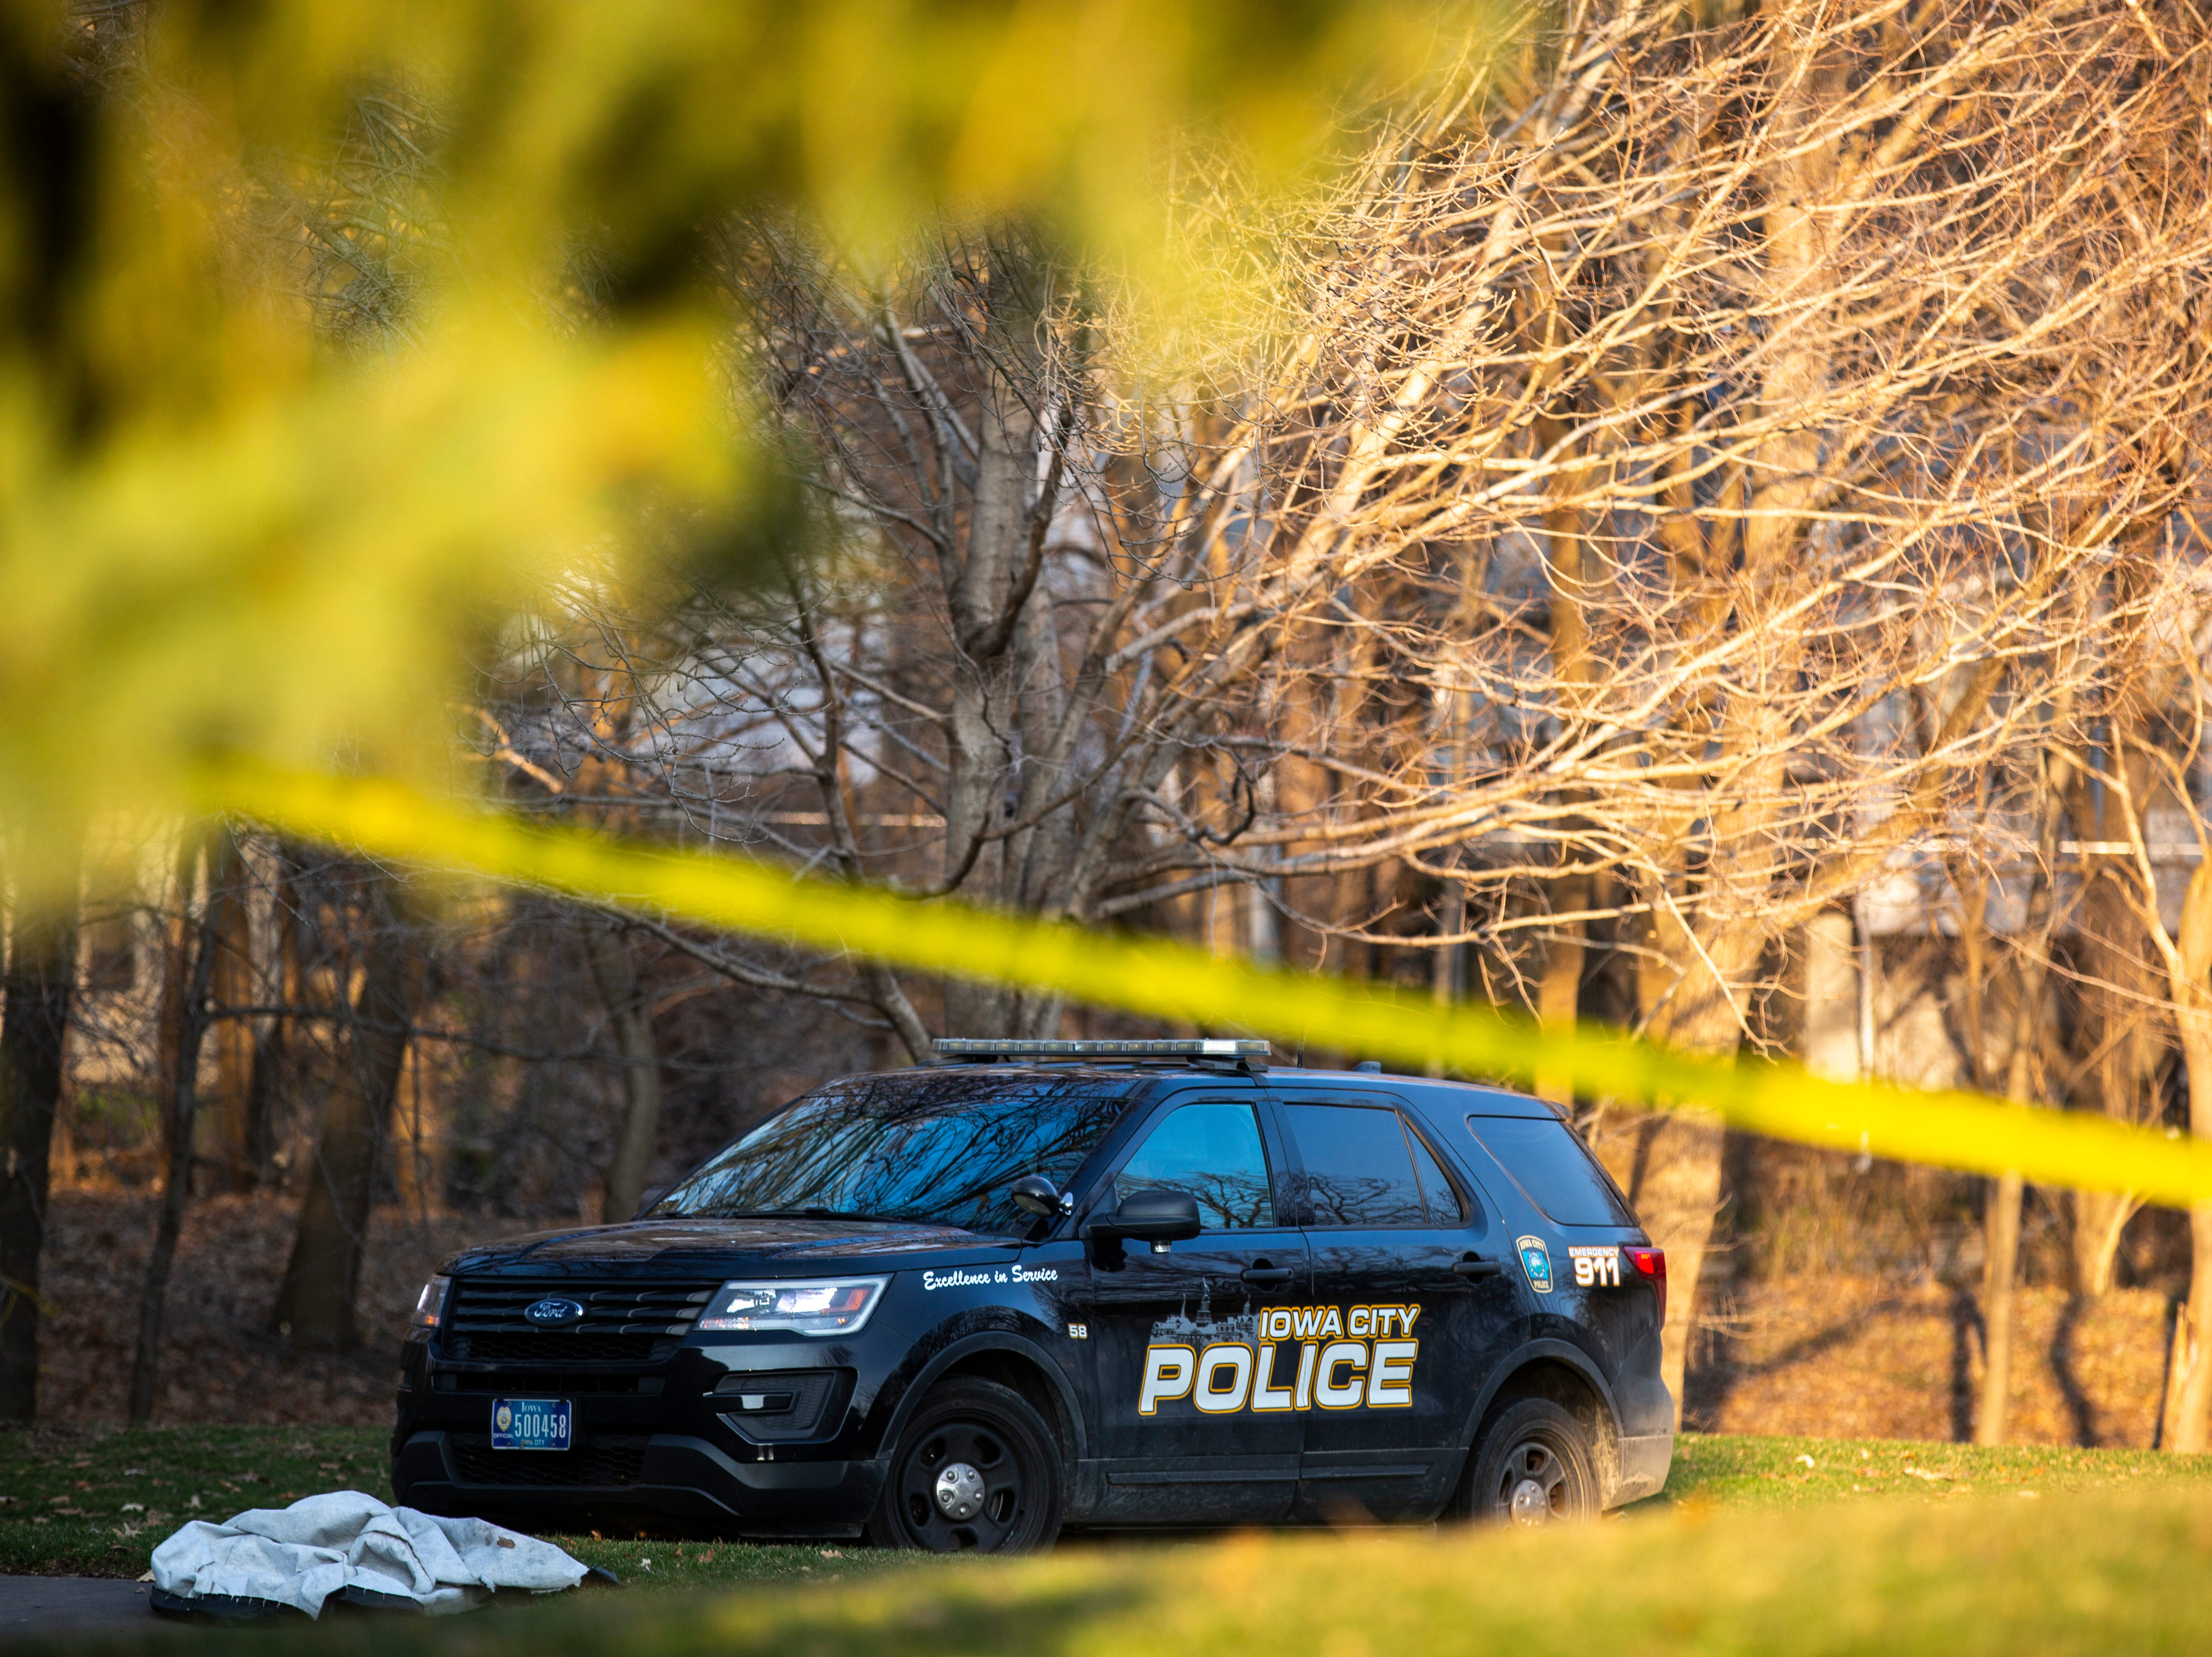 A police car is parked in the backyard of the residence while investigators respond to a scene of a suspicious death on Friday, April 5, 2019, at 114 Green Mountain Drive in Iowa City, Iowa.